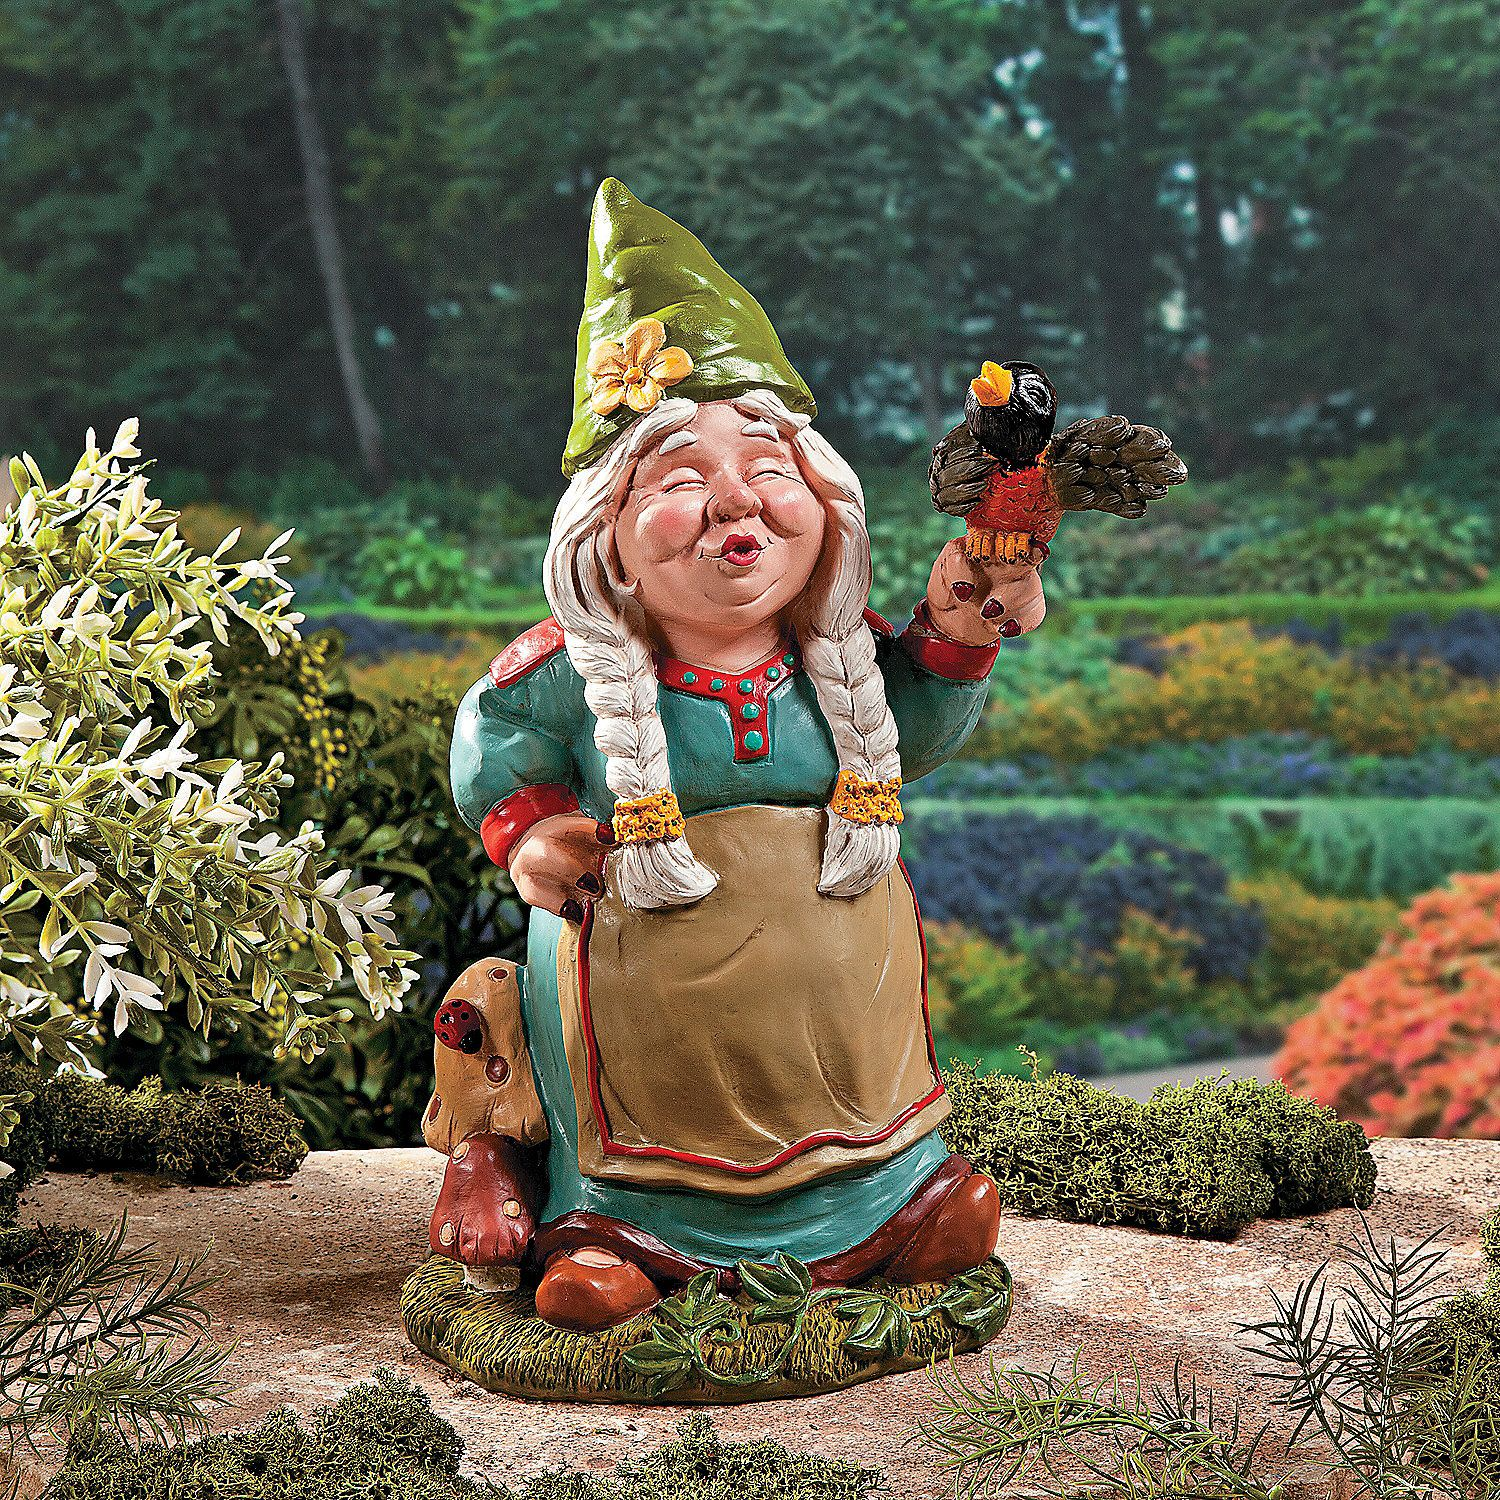 Girl Gnome Bursting Out In Song This Girl Gnome Has A Songbird